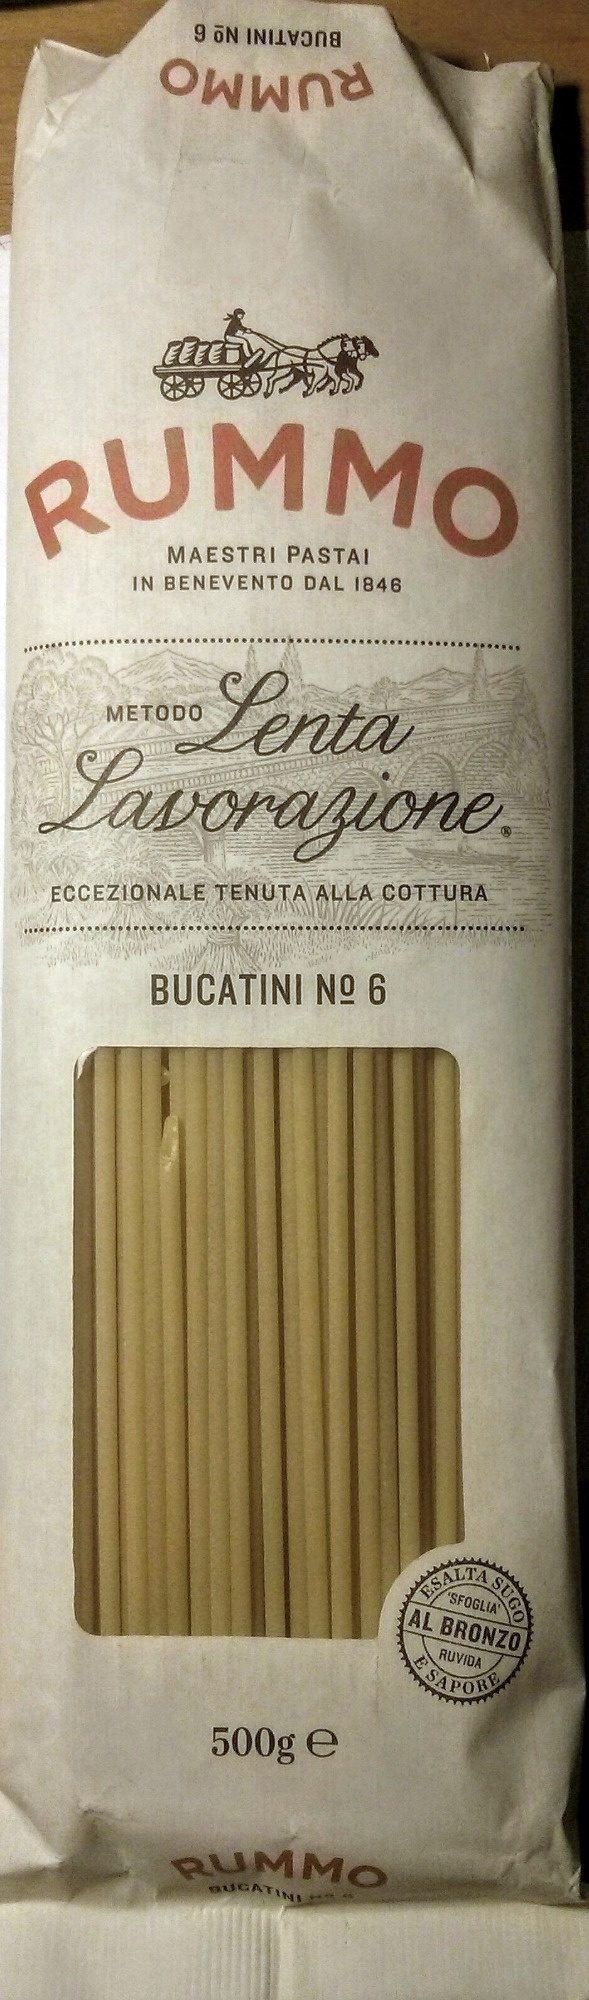 Bucatini N°6 - Rummo - 500 g - Product